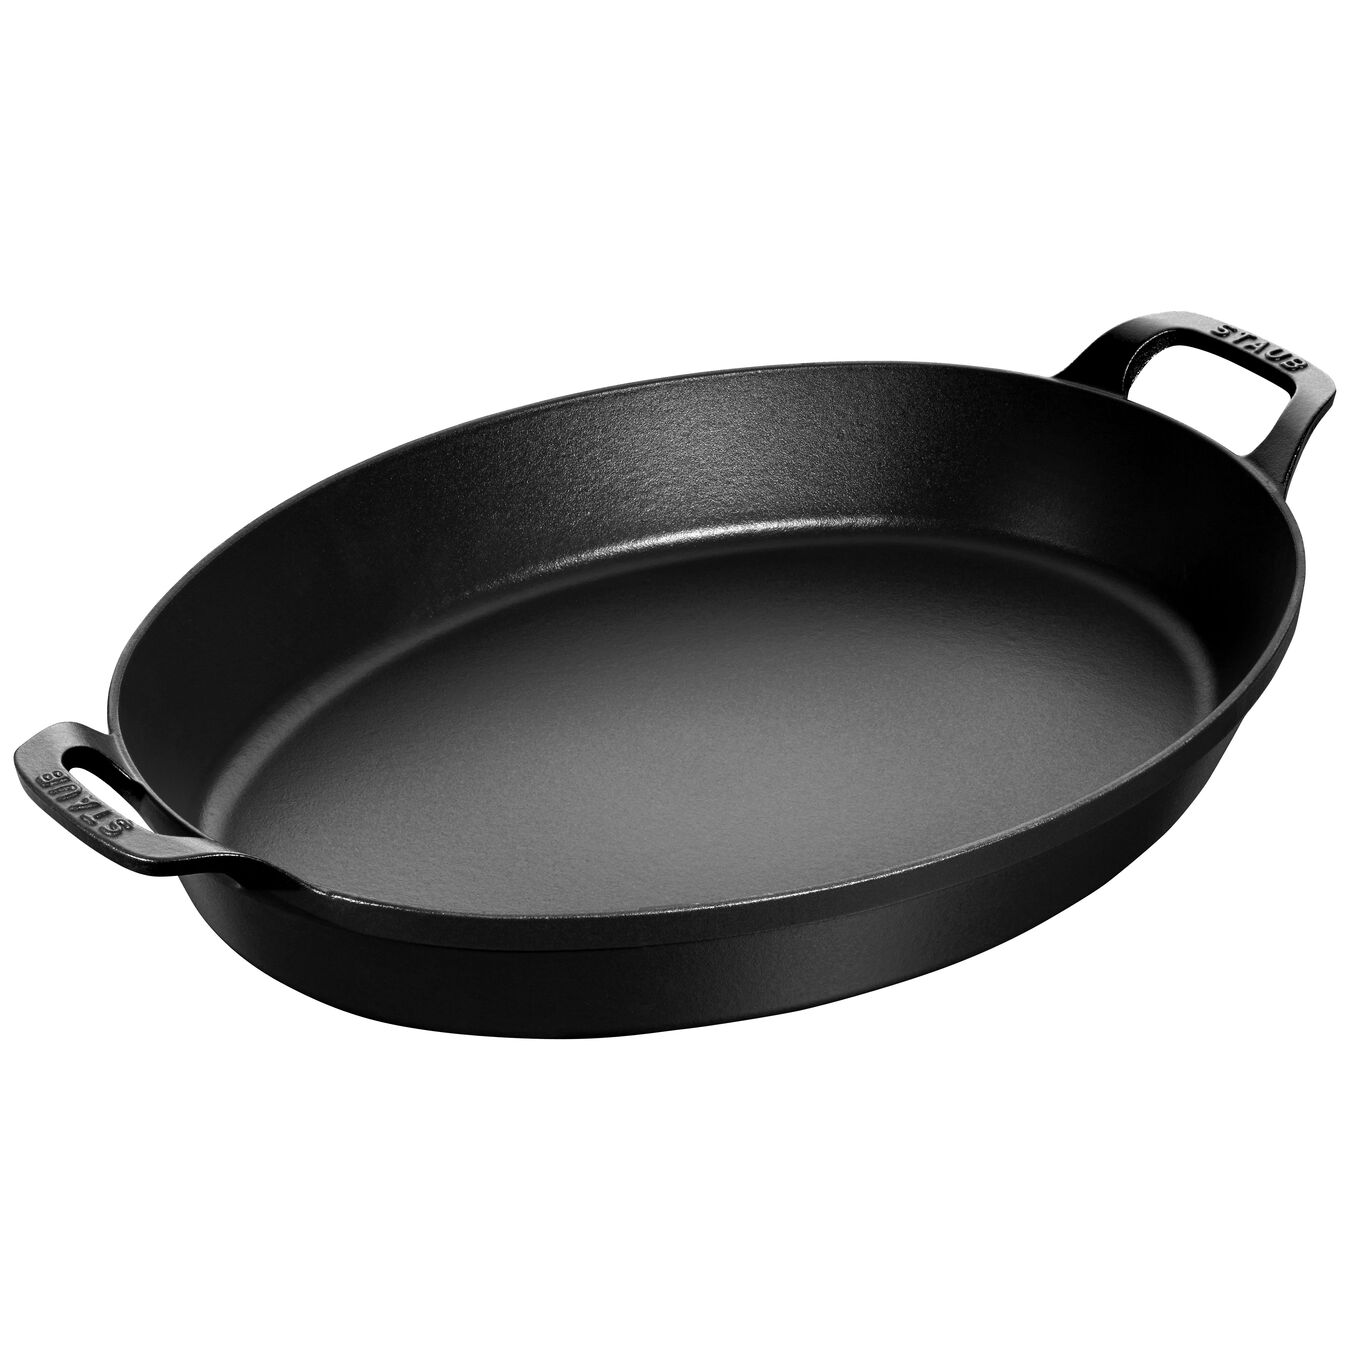 14.5-inch X 11.2-inch Oval Baking Dish - Matte Black,,large 1